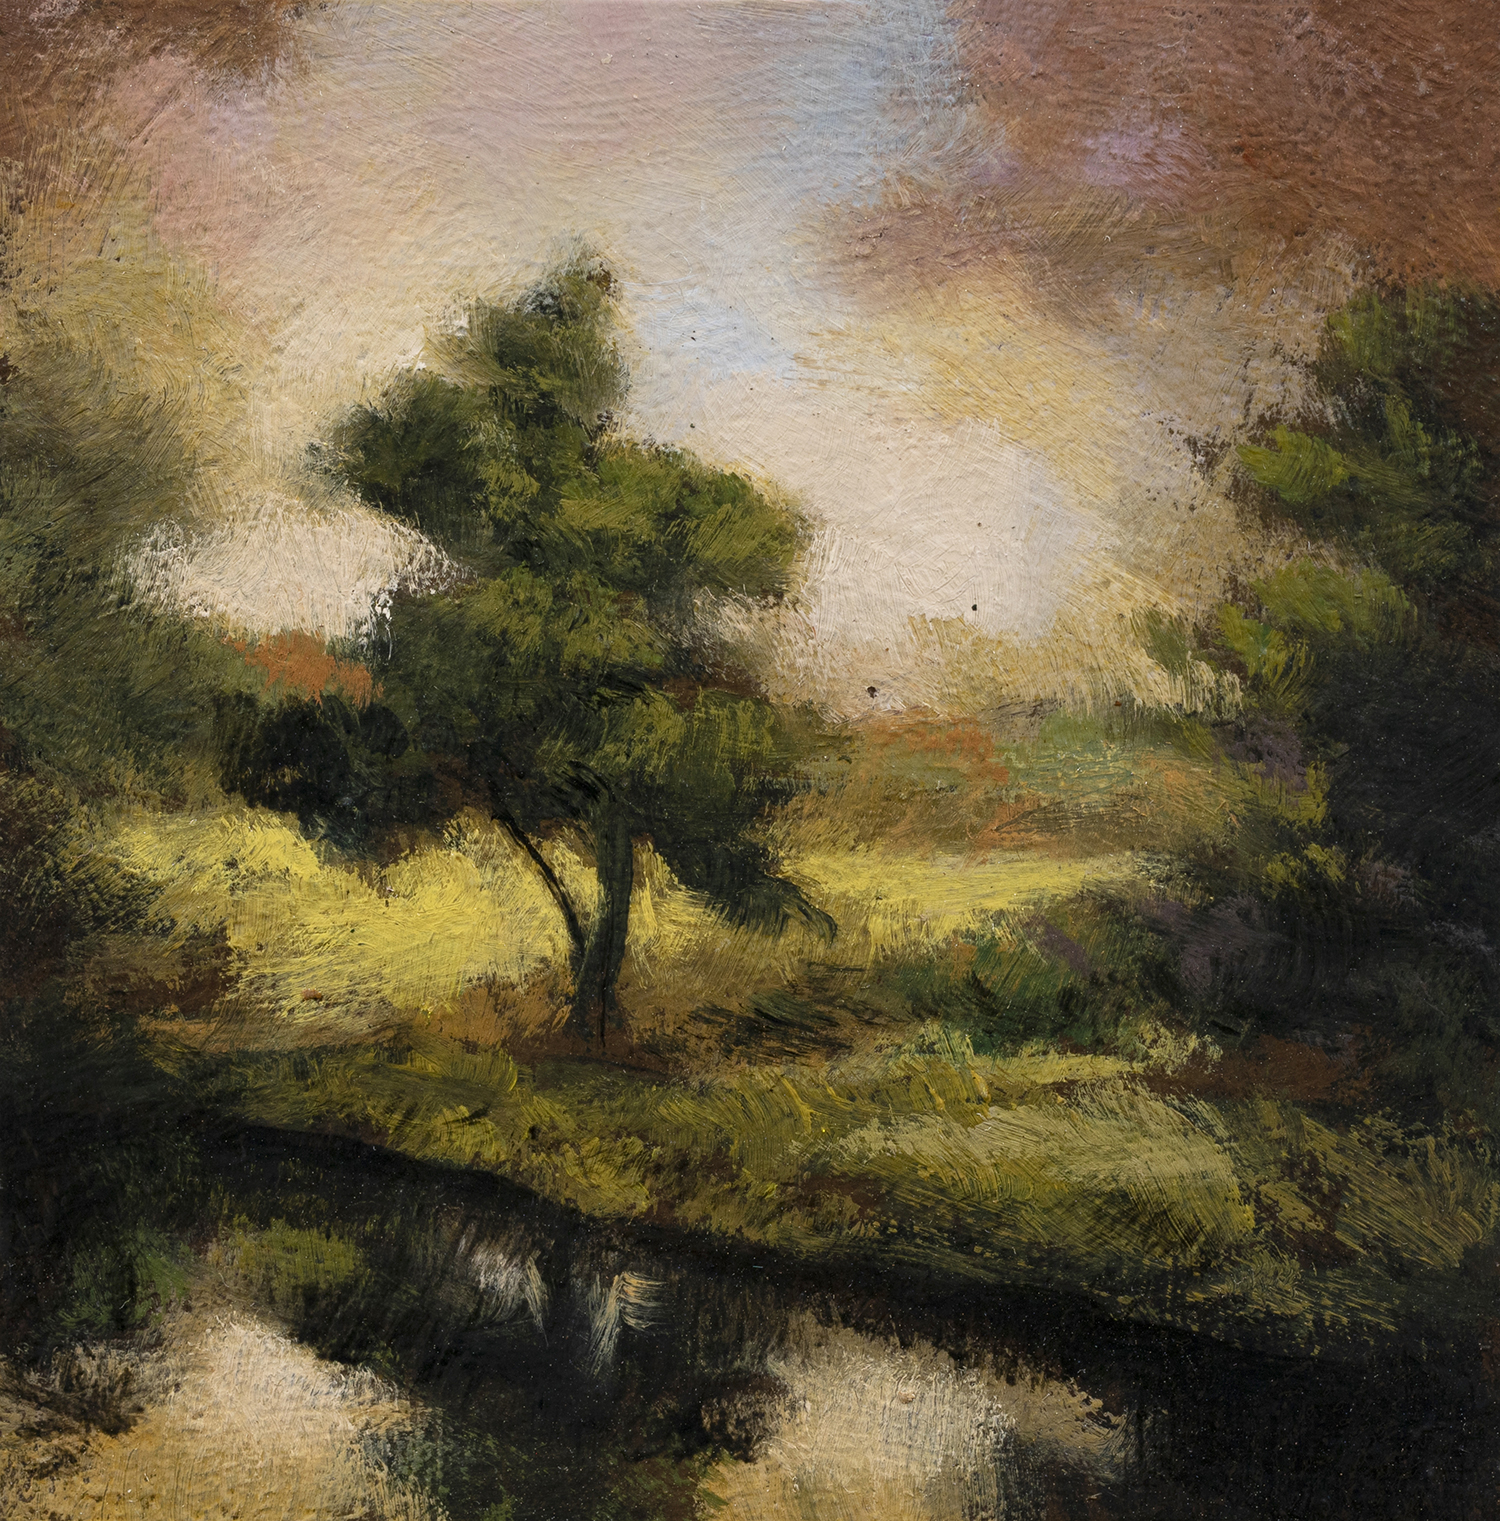 Misty Pond by M Francis McCarthy - 3½x3½ Oil on Wood Panel